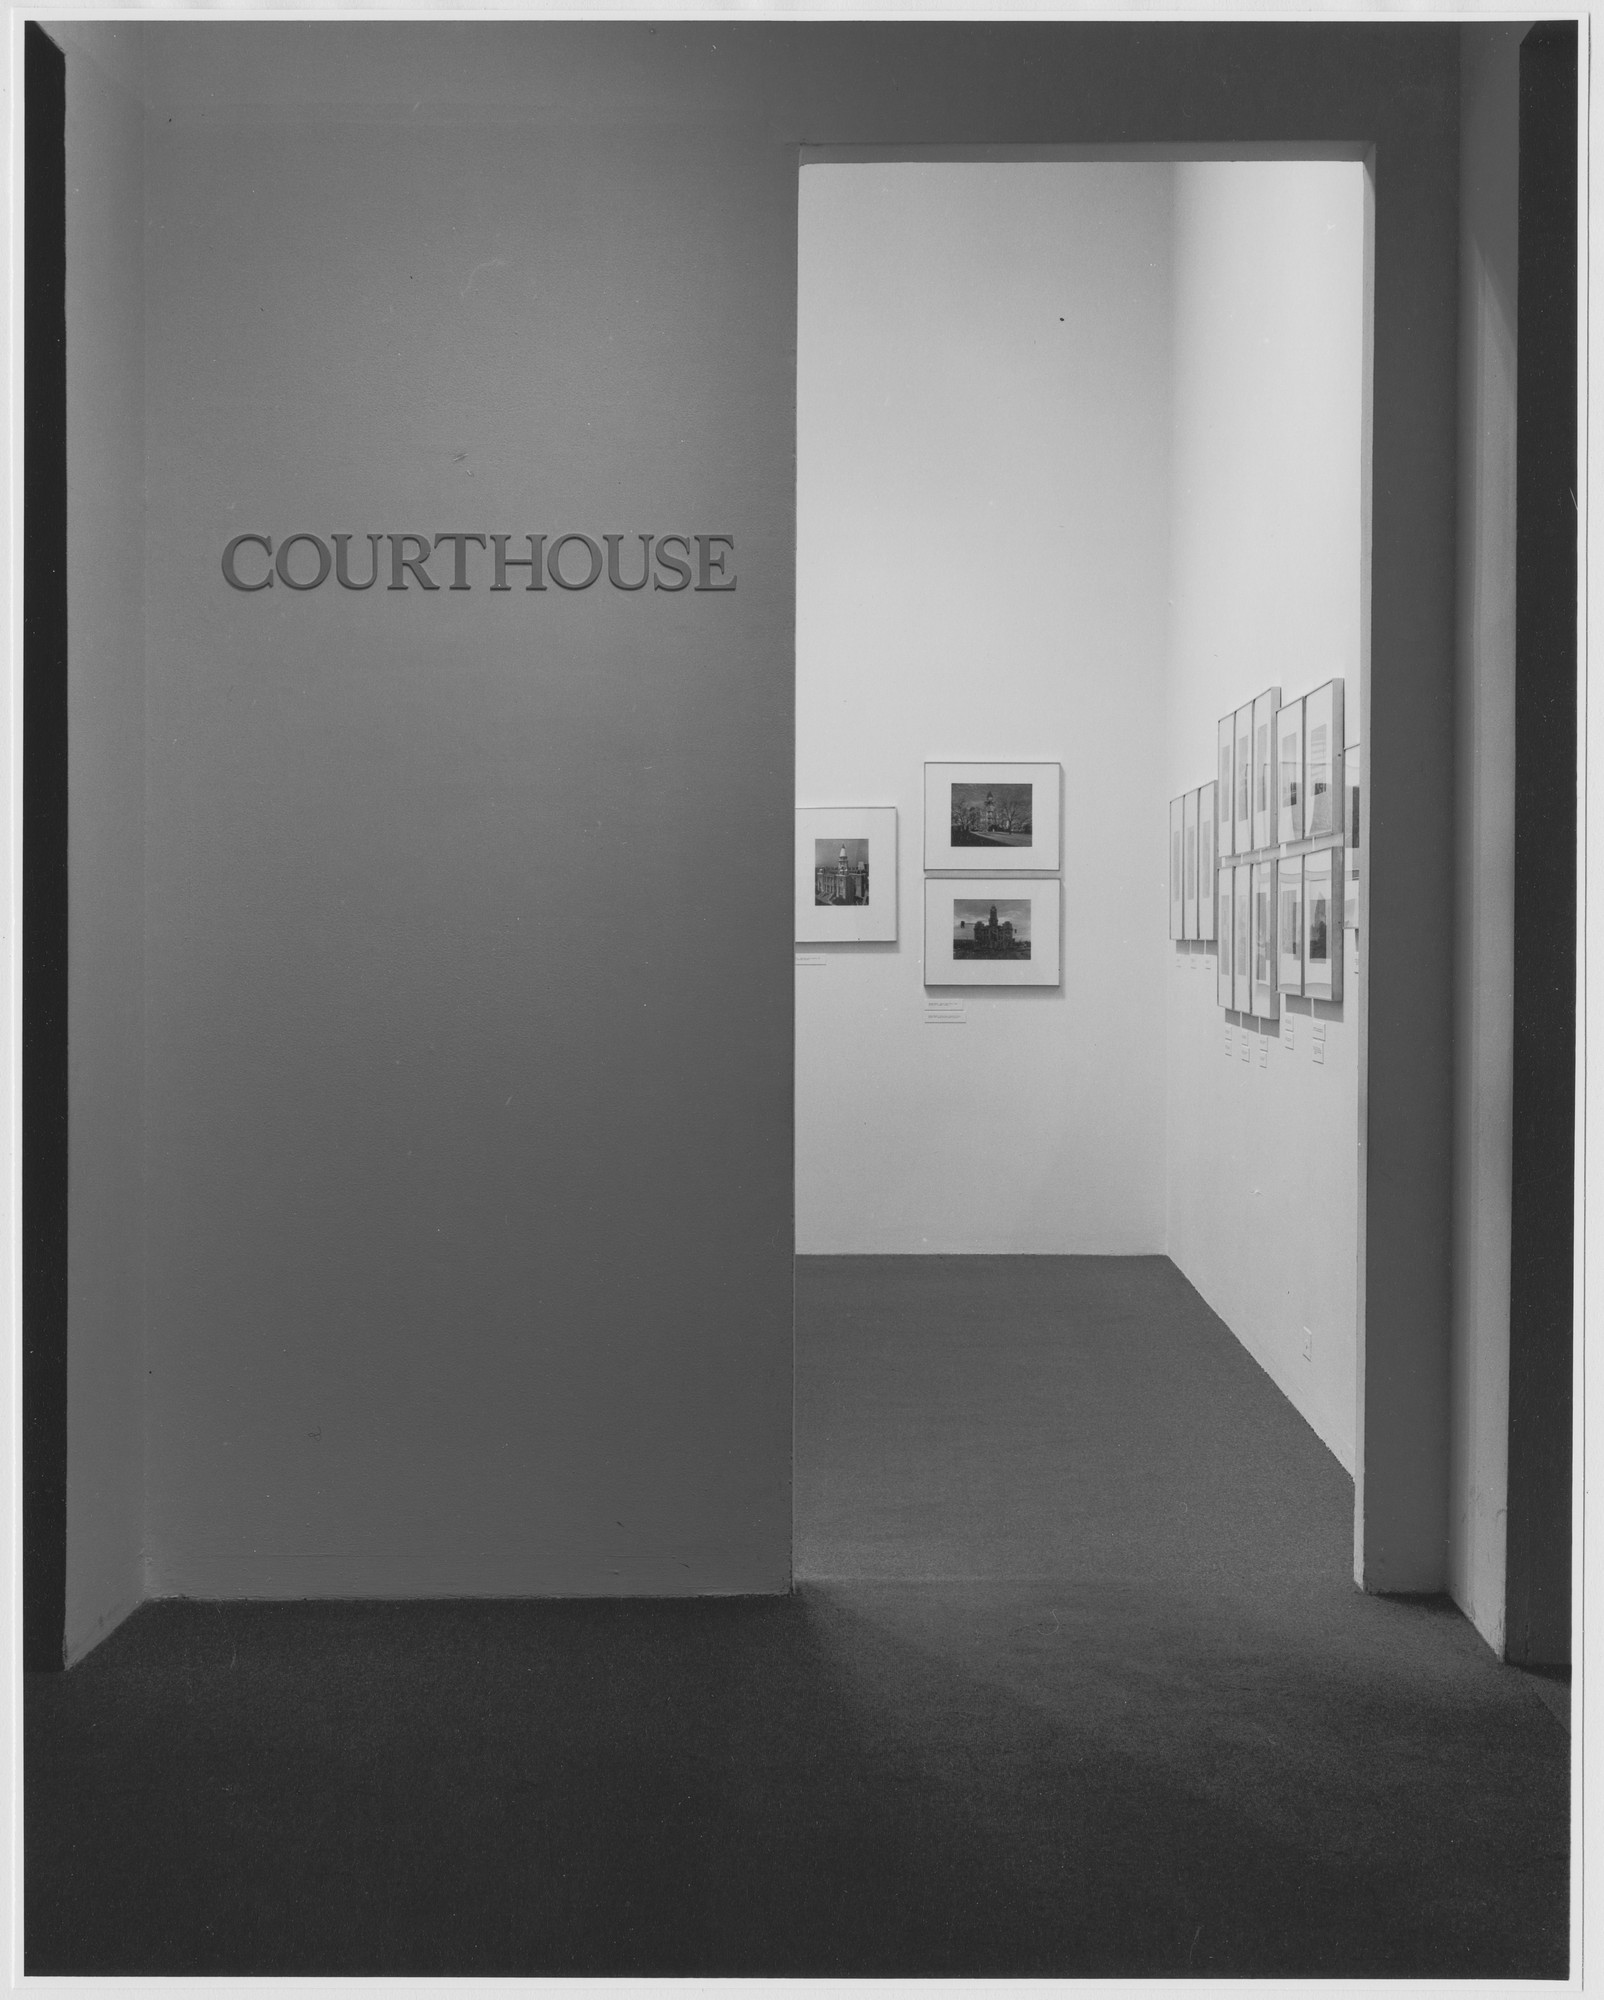 "Installation view of the exhibition, ""Courthouse."" April 12, 1977–July 10, 1977. Photographic Archive. The Museum of Modern Art Archives, New York. IN1172.1. Photograph by David Allison."